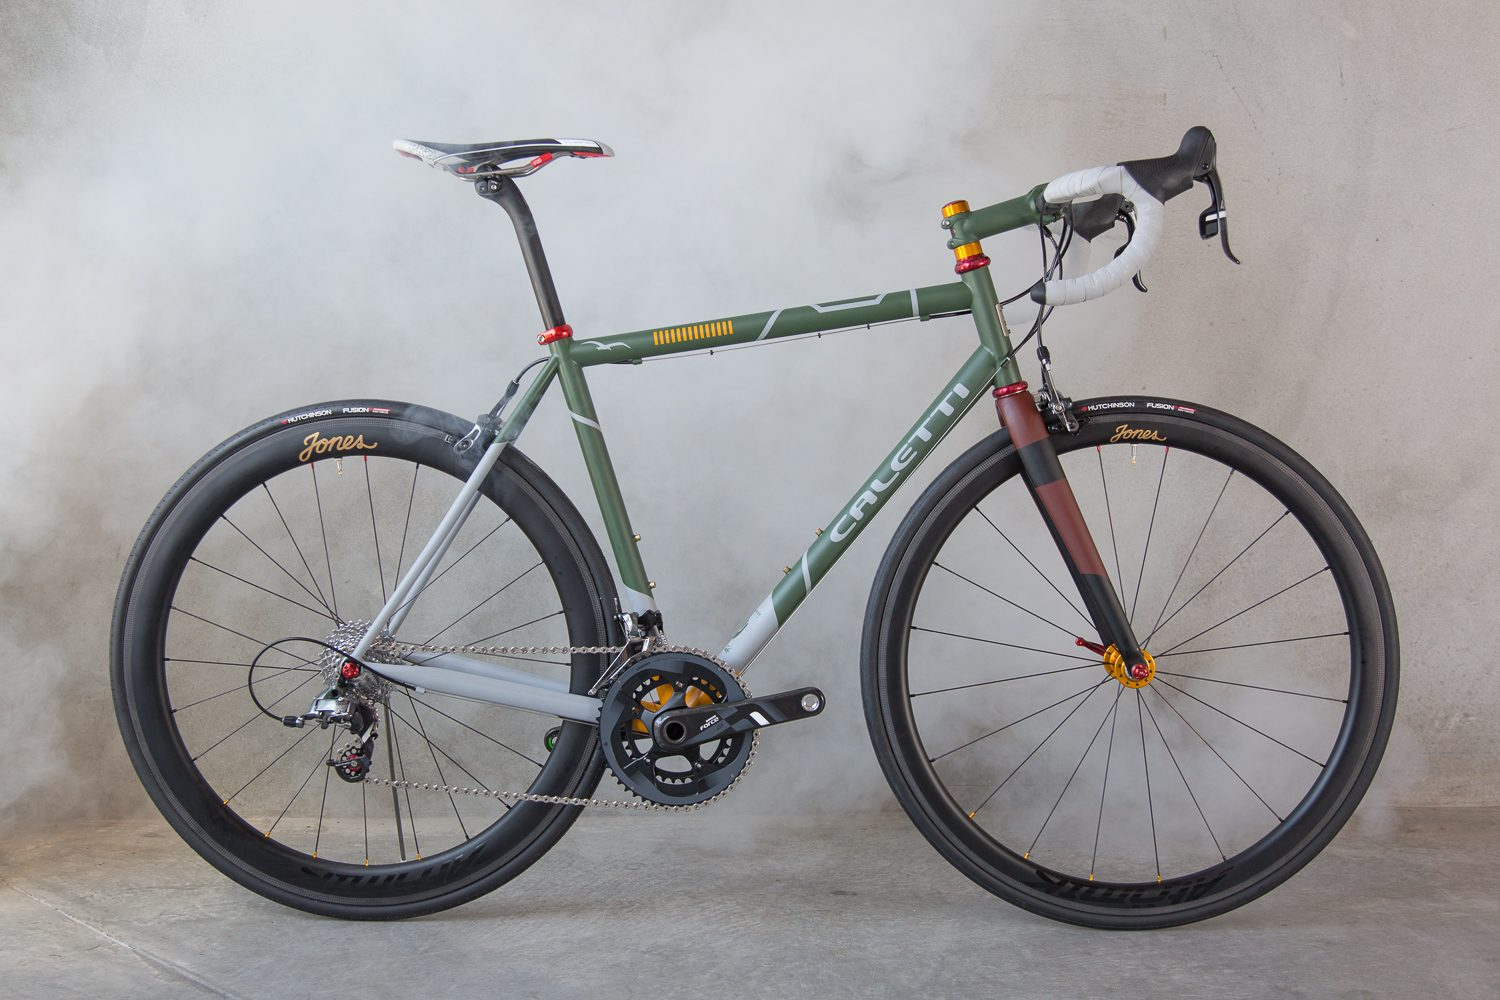 Boba Fett inspired handmade steel Road Race Special bicycle